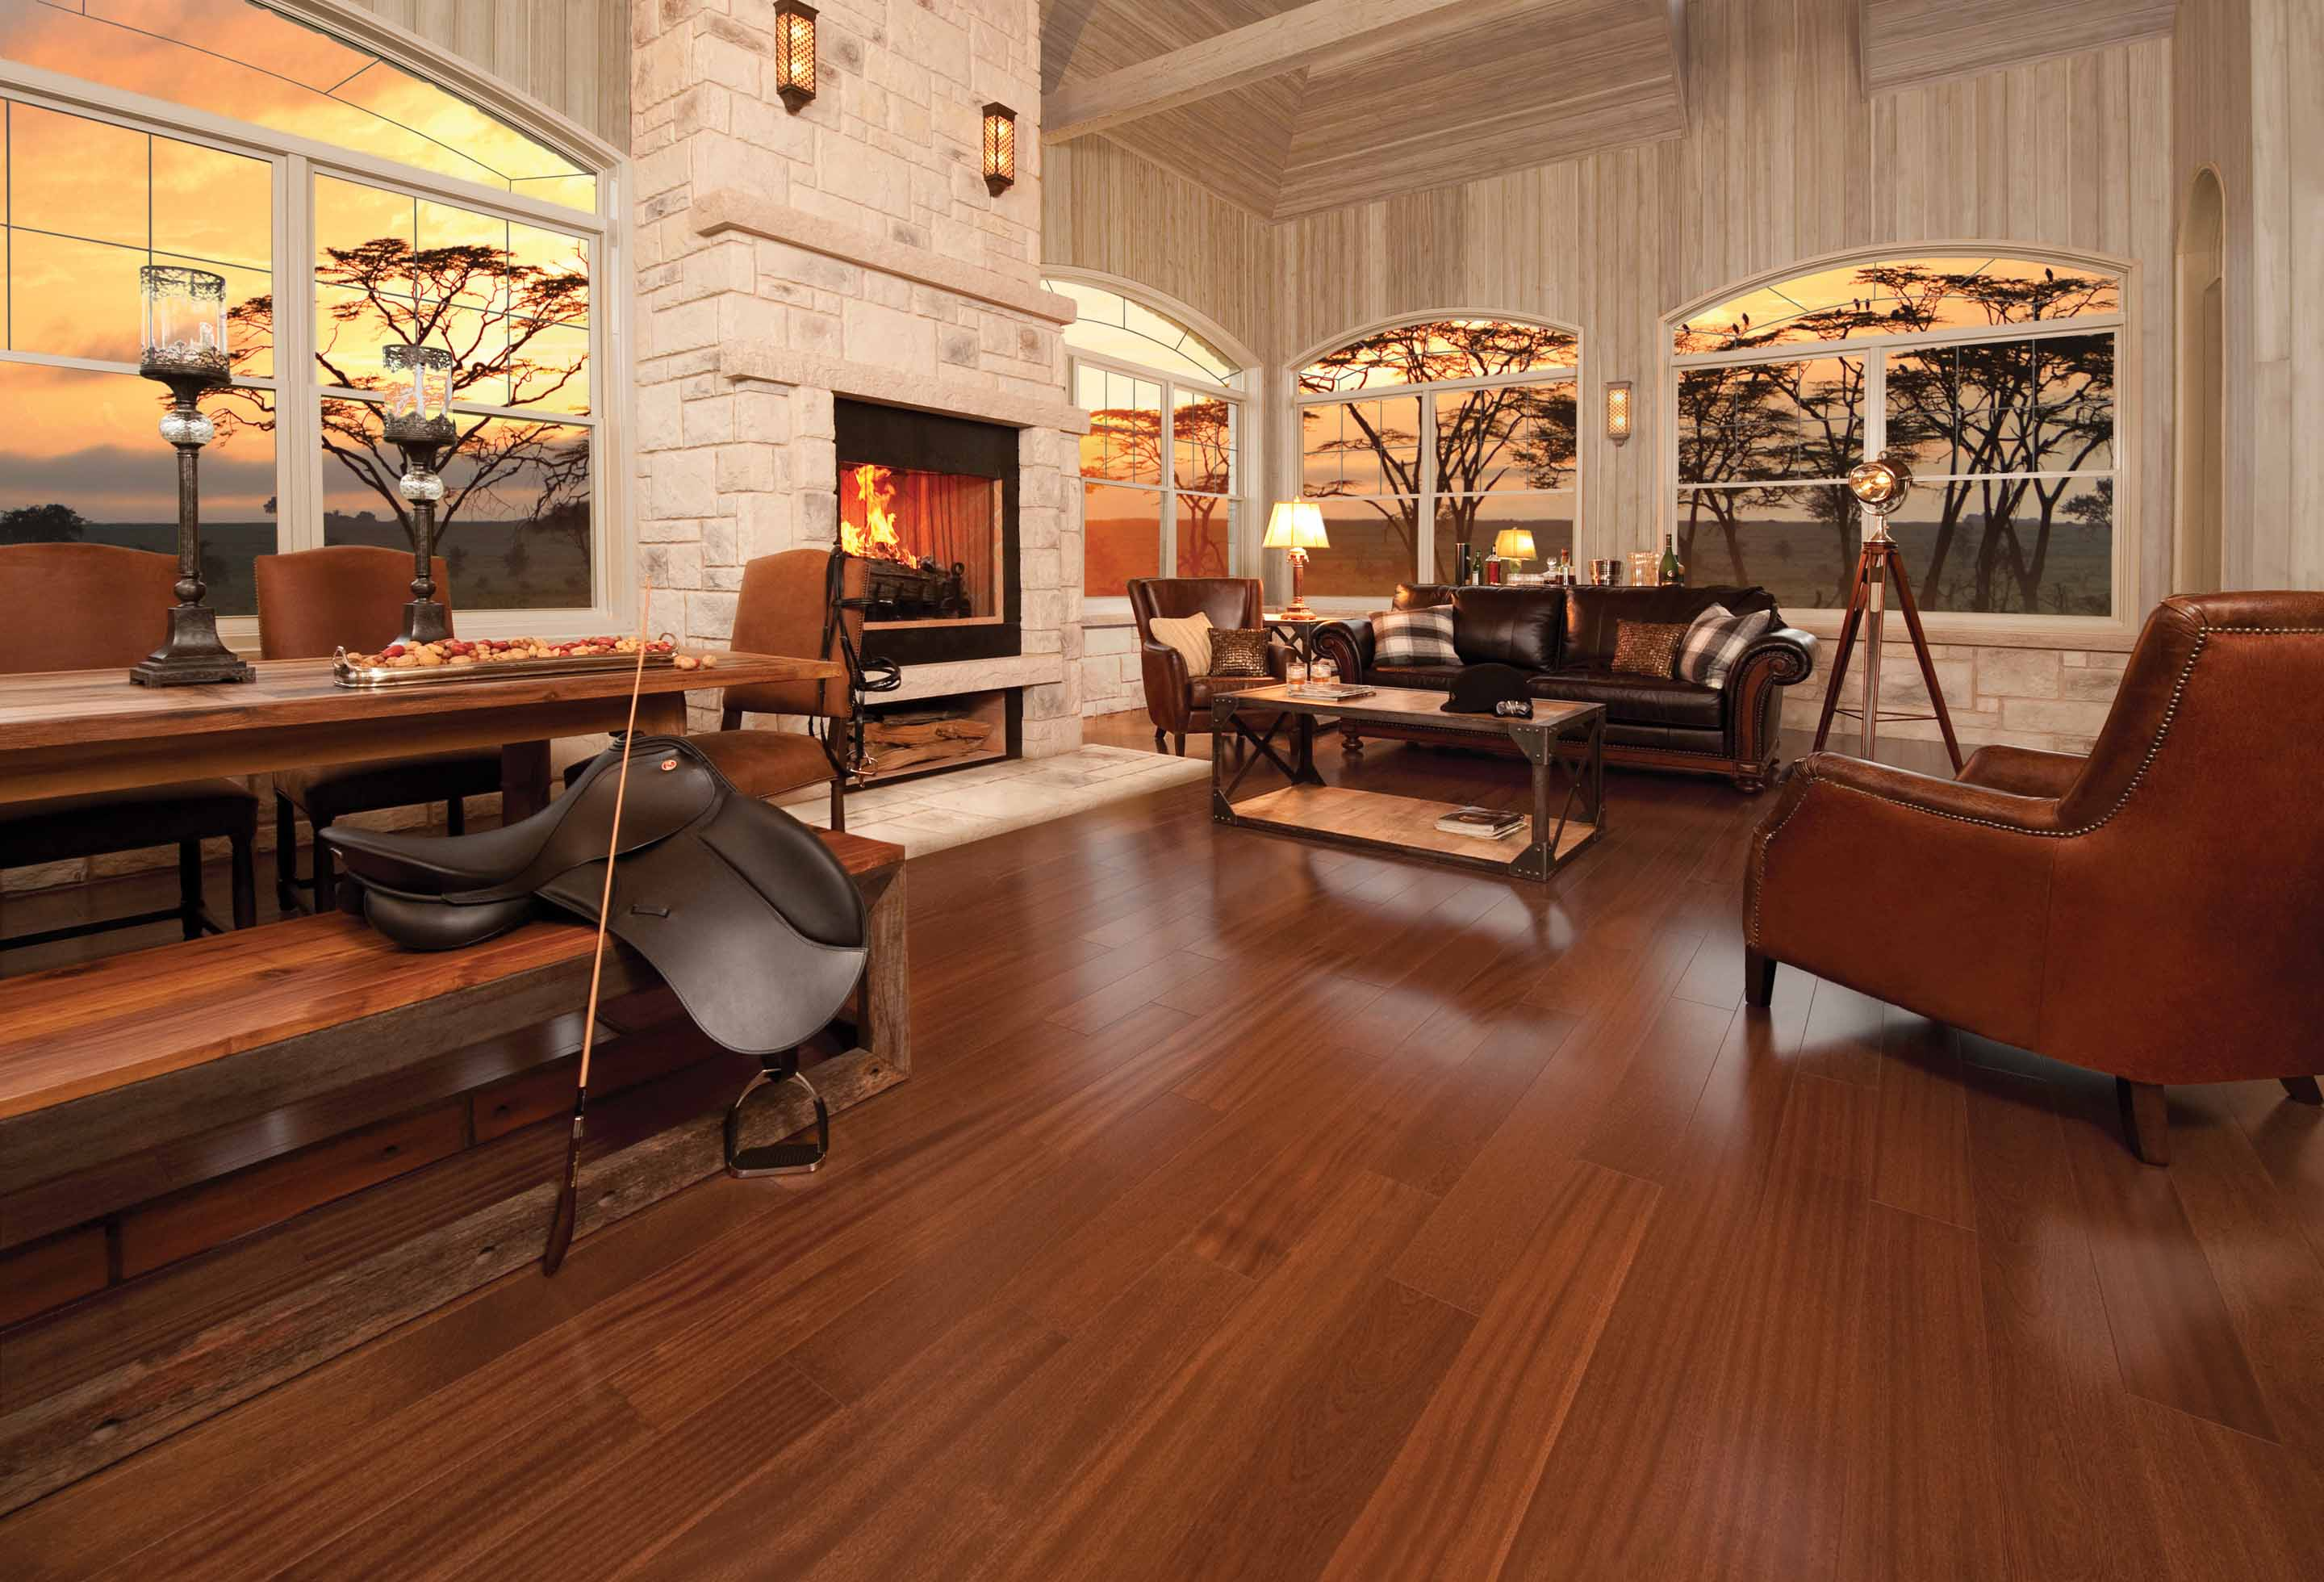 Mirage Hardwood Flooring Westchester Wood Yonkers Floor Installer Nyc Floors Manhattan Depot Of